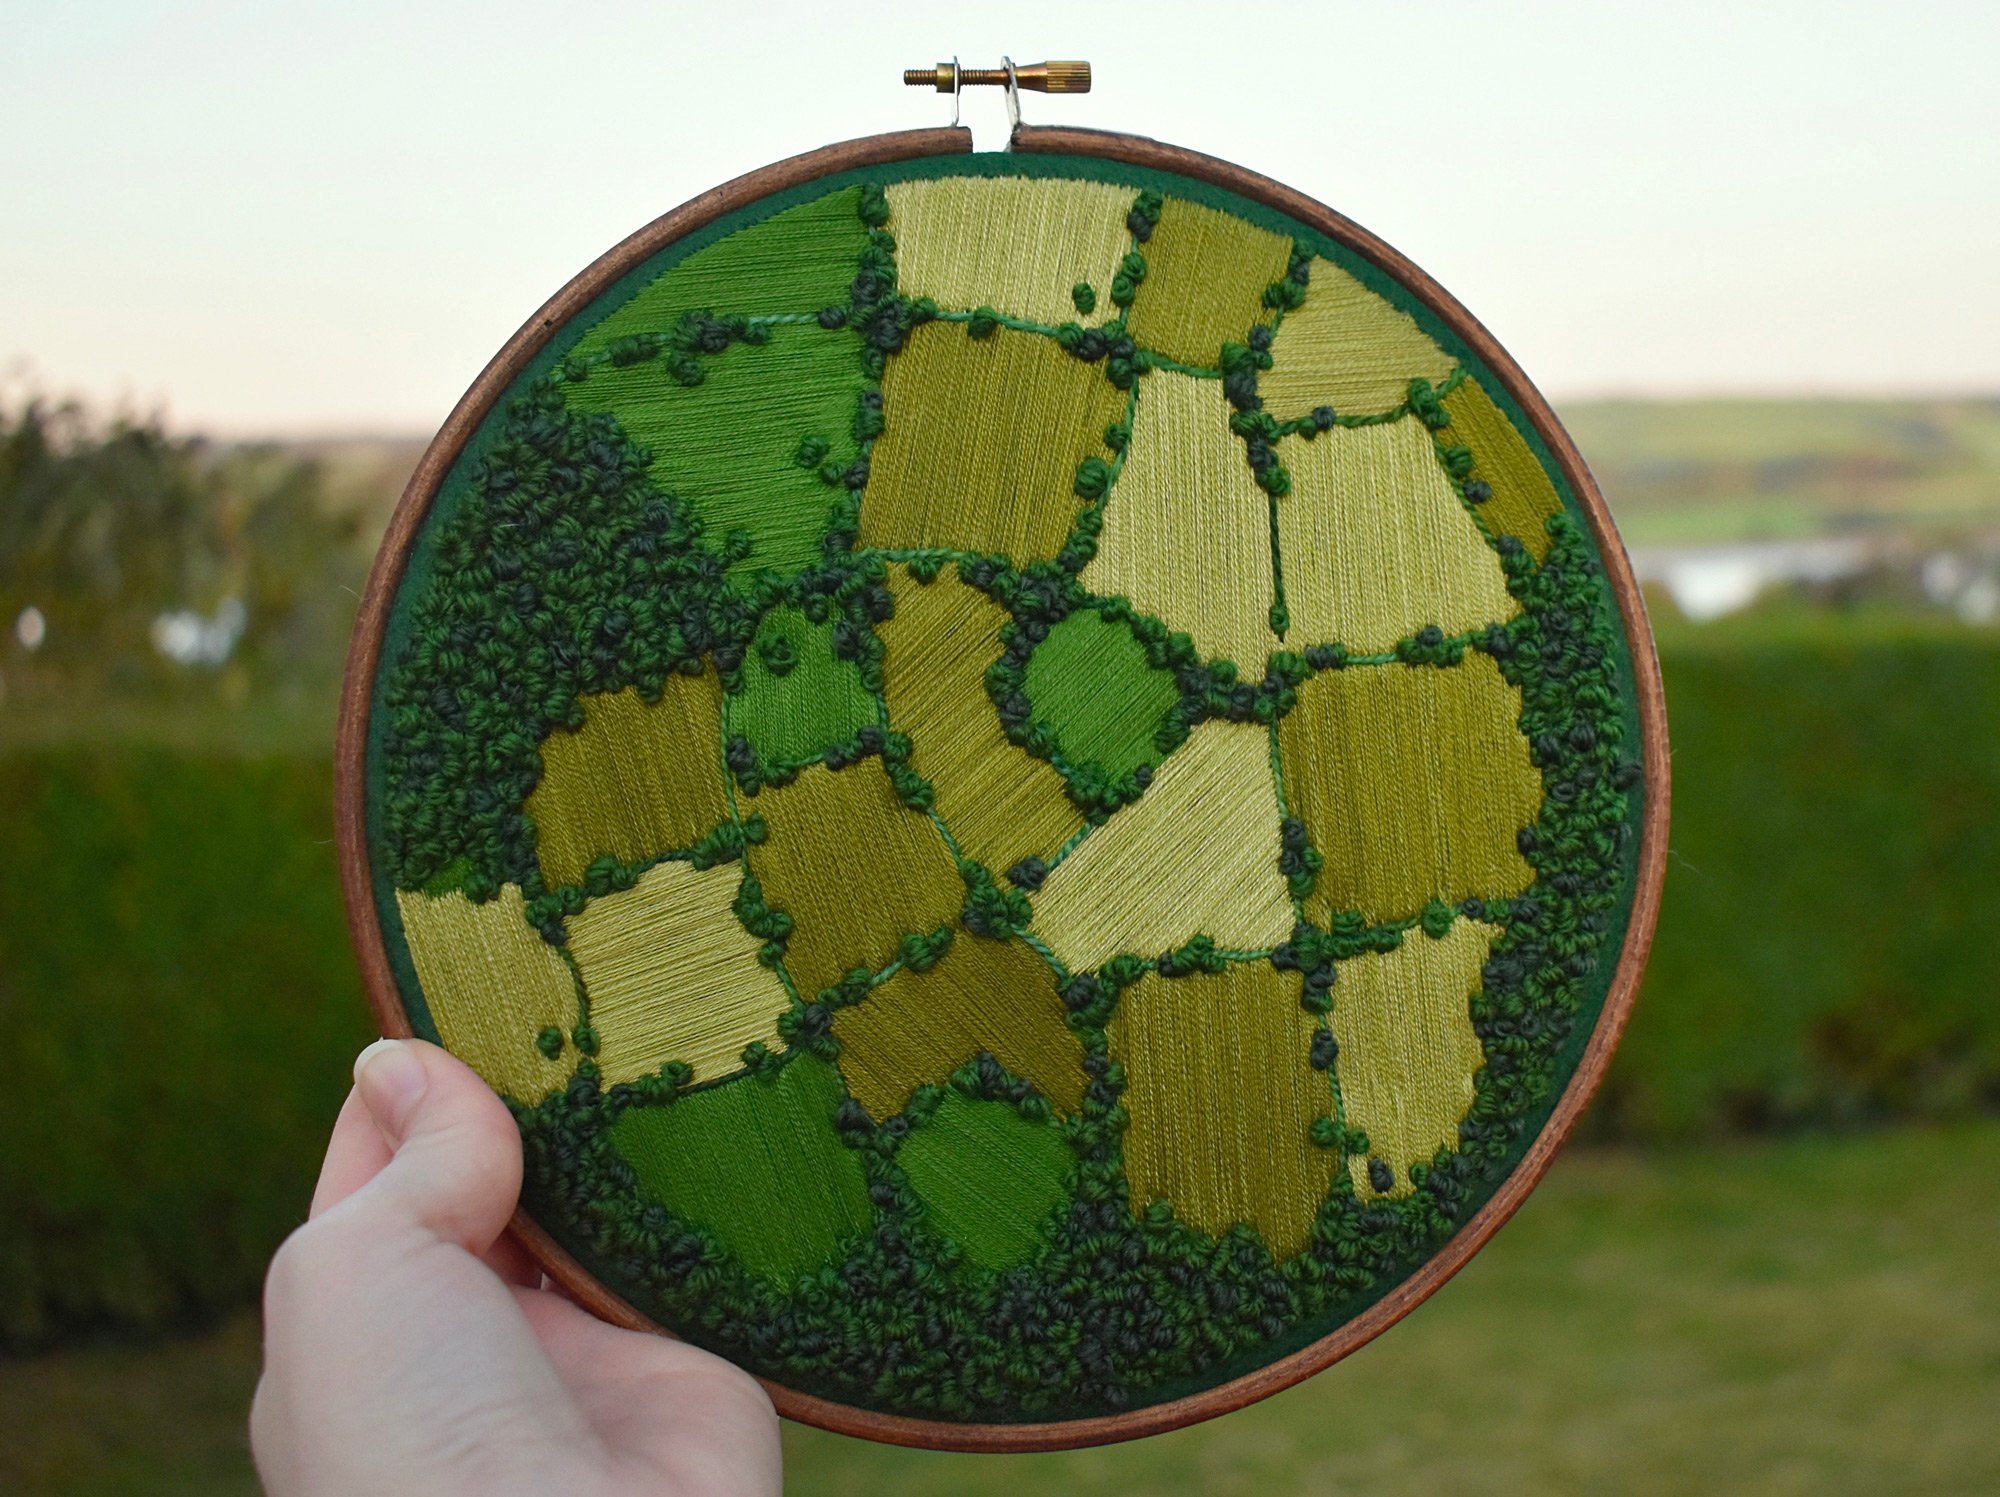 Aerial Embroidery Showcases The Hidden Patterns Of Cultivated Farmland